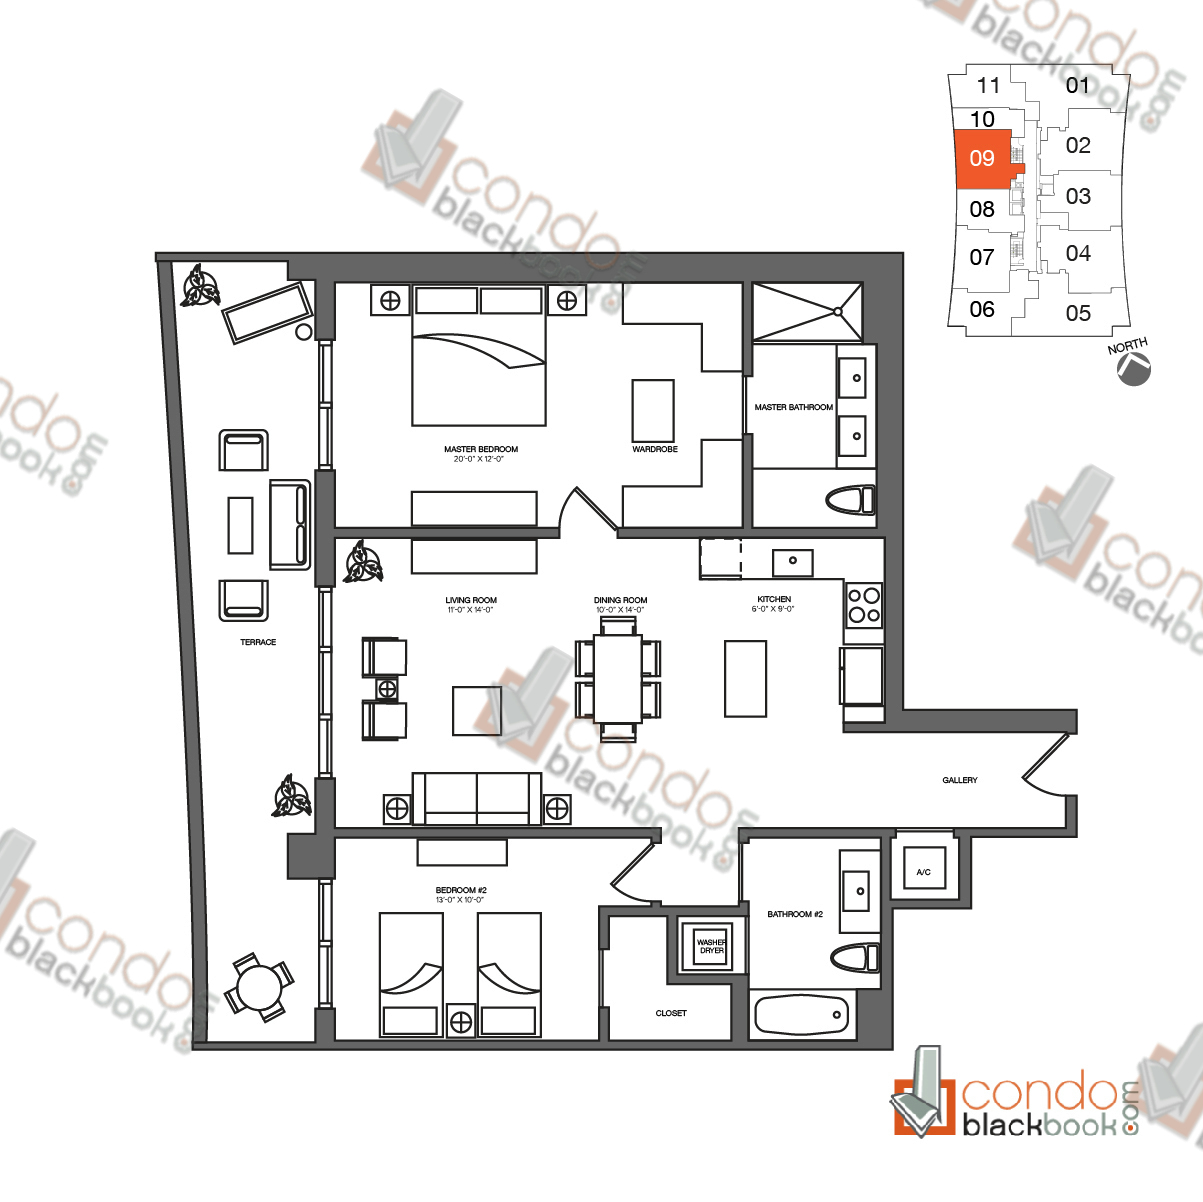 Floor plan for 1010 Brickell Brickell Miami, model F, line 09, 2/2 bedrooms, 1,404 sq ft